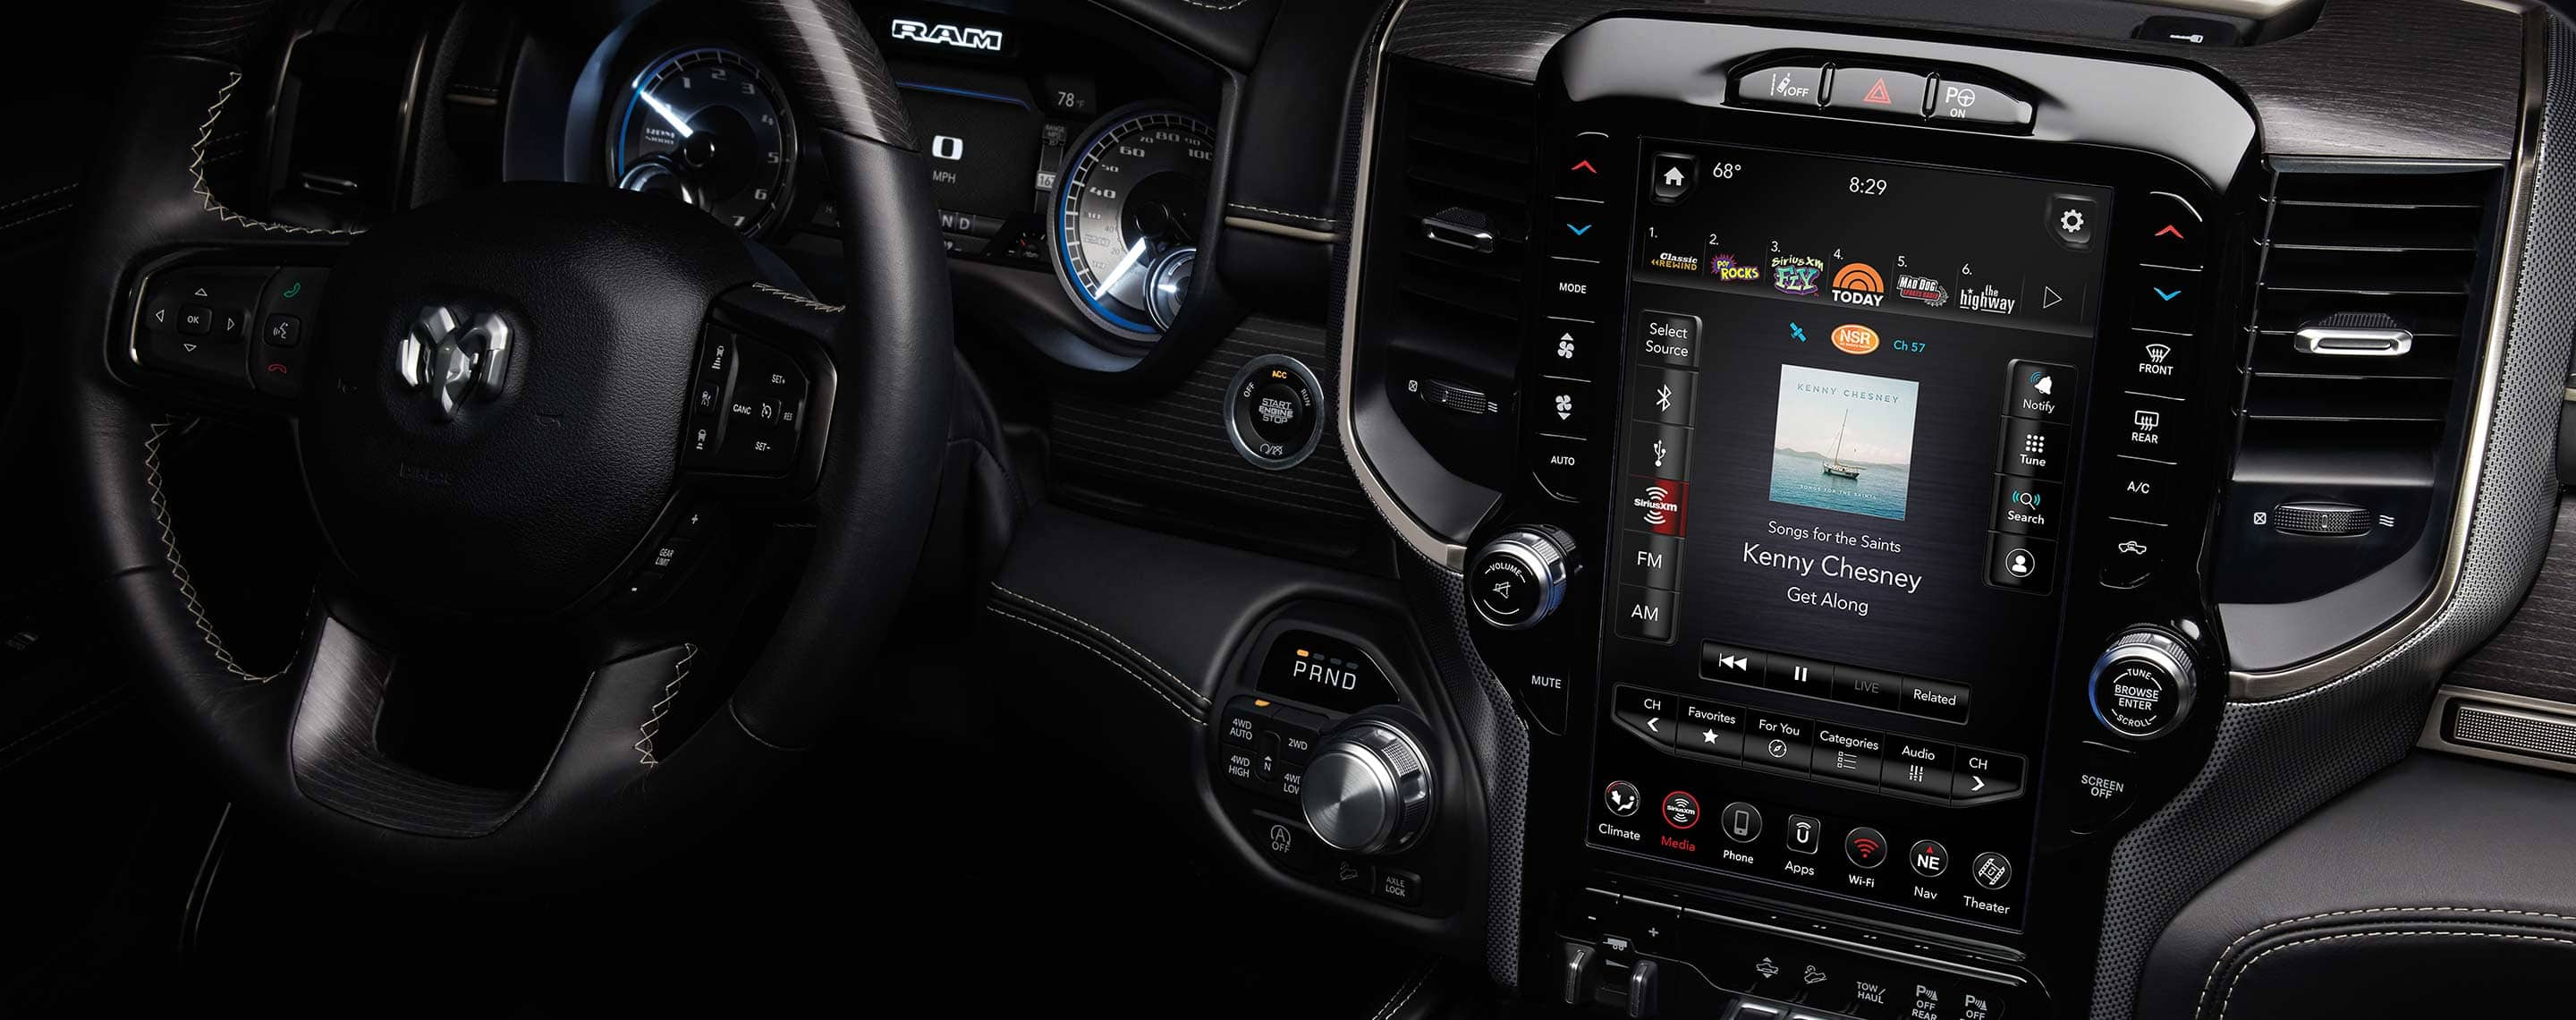 The interior of the 2021 Ram 1500, focusing on the 12-inch touchscreen displaying song title and artist info for the music playing.